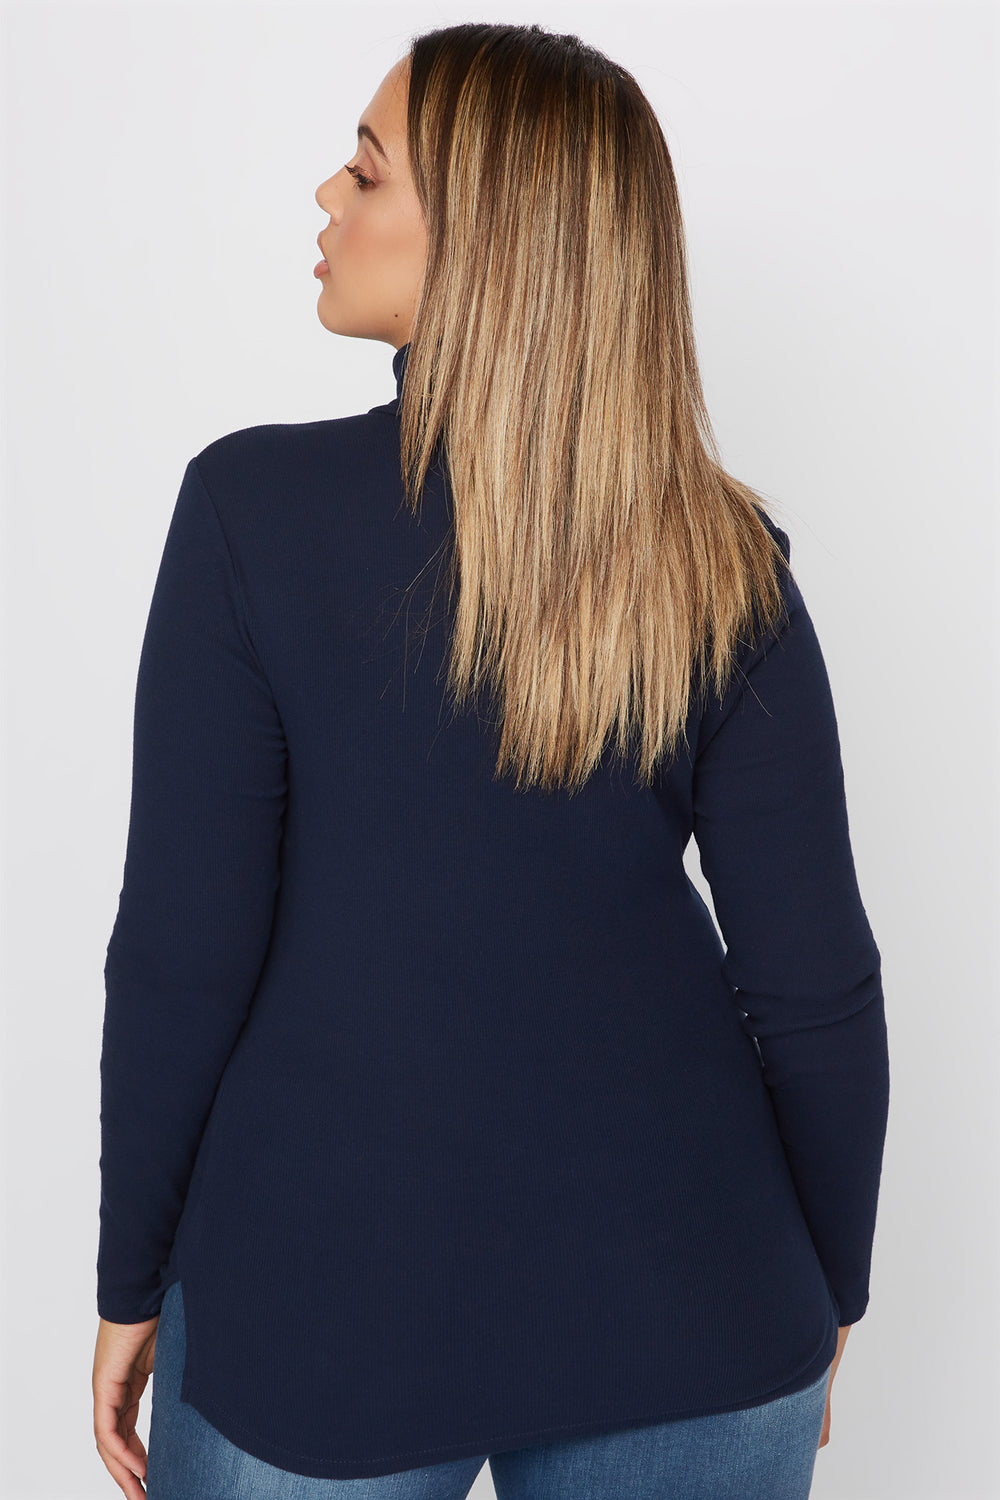 Plus Size Basic Ribbed Turtleneck Long Sleeve Top Navy